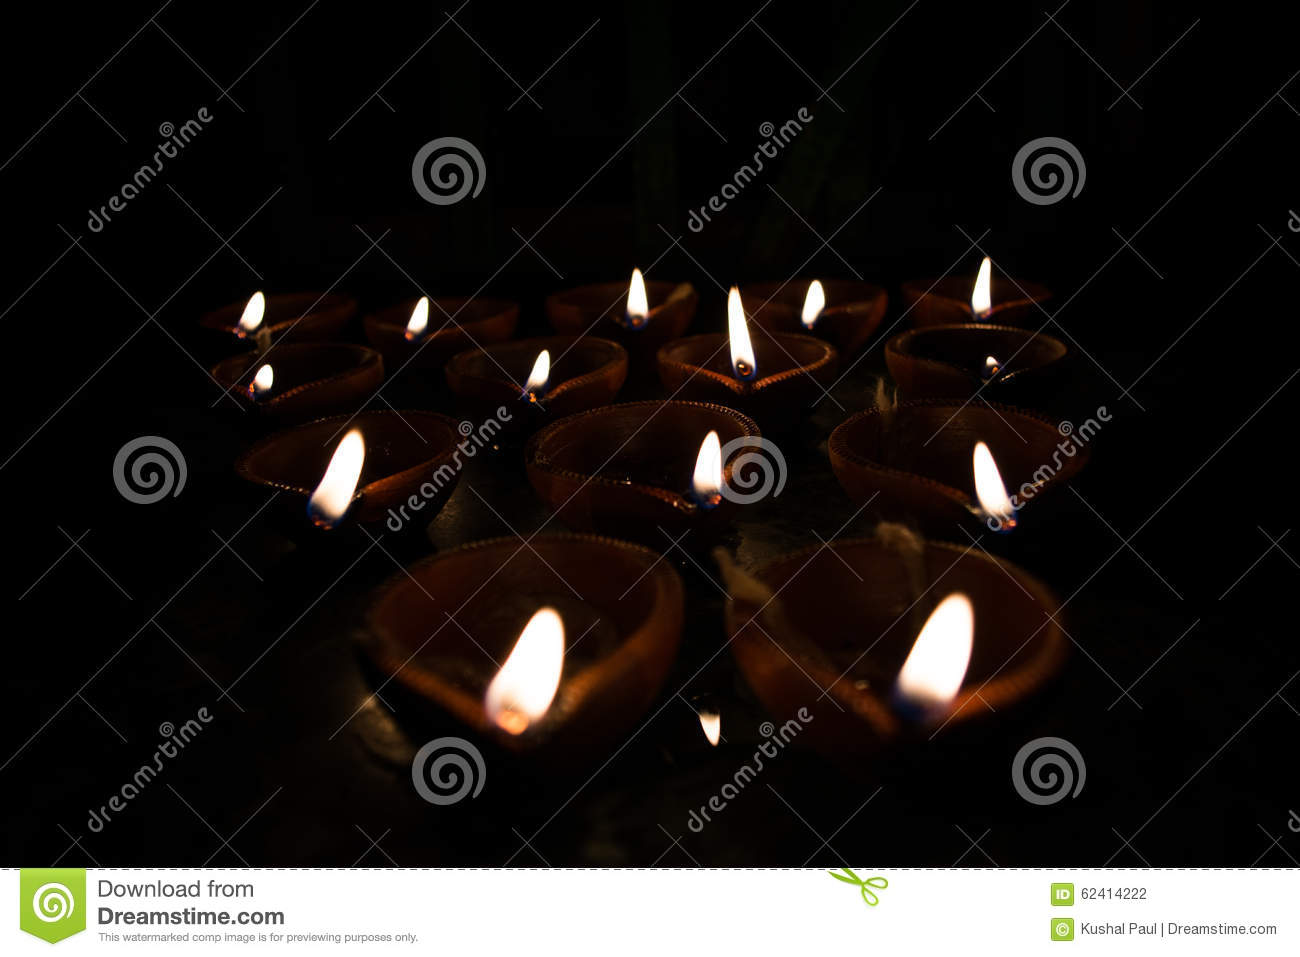 Earthen Lamp Diwali Earthen Lamps Diyas Stock Photo Image 62414222